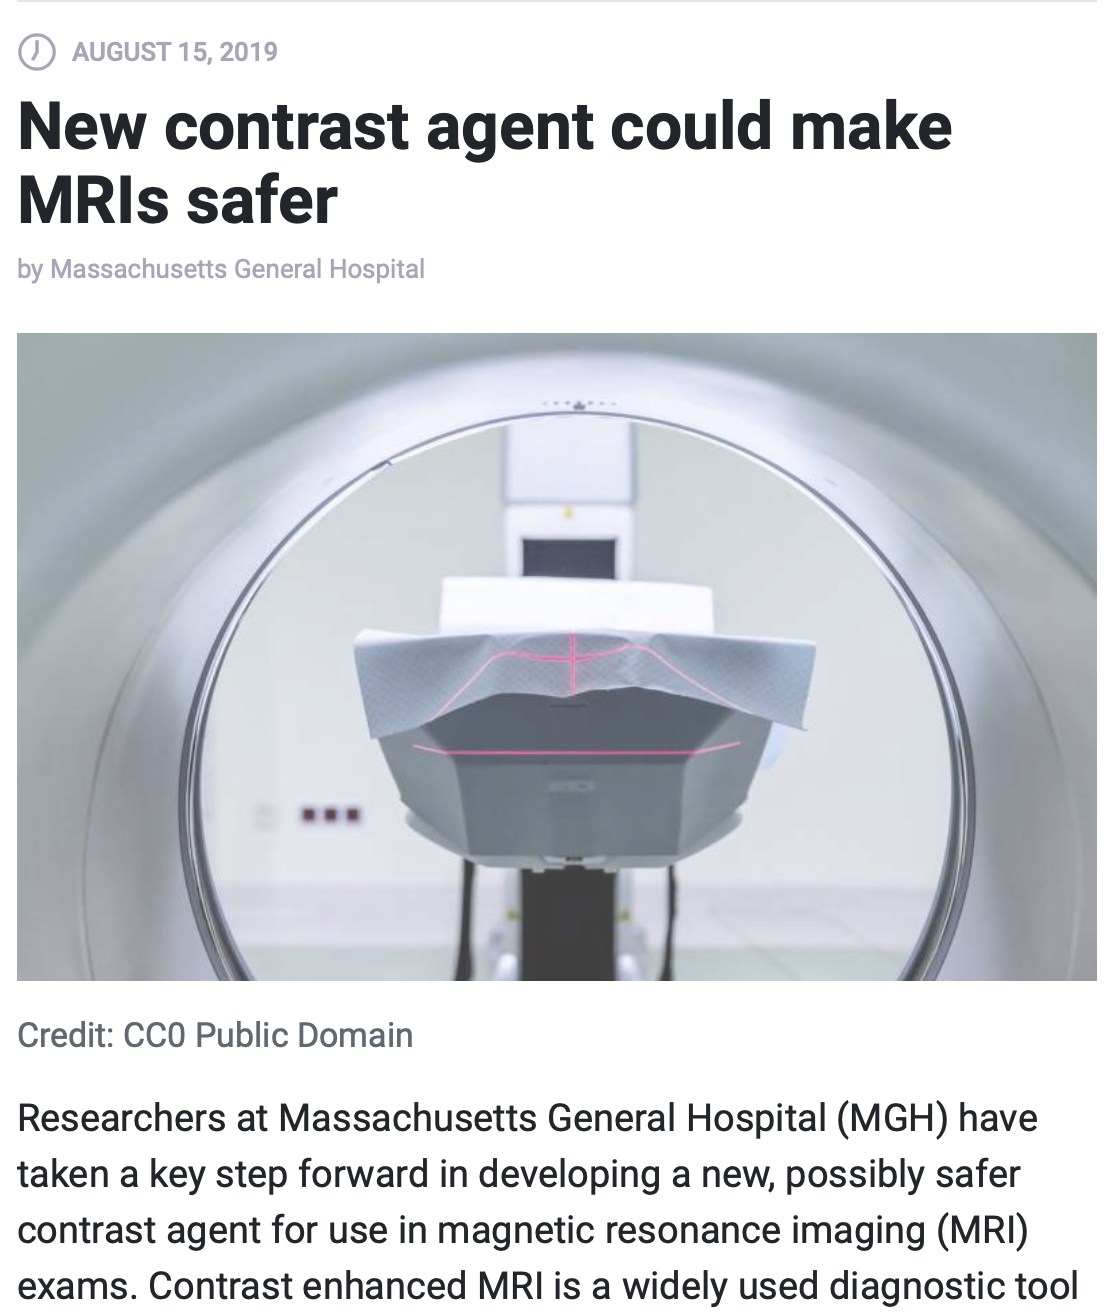 MGH: New contrast agent could make MRIs safer